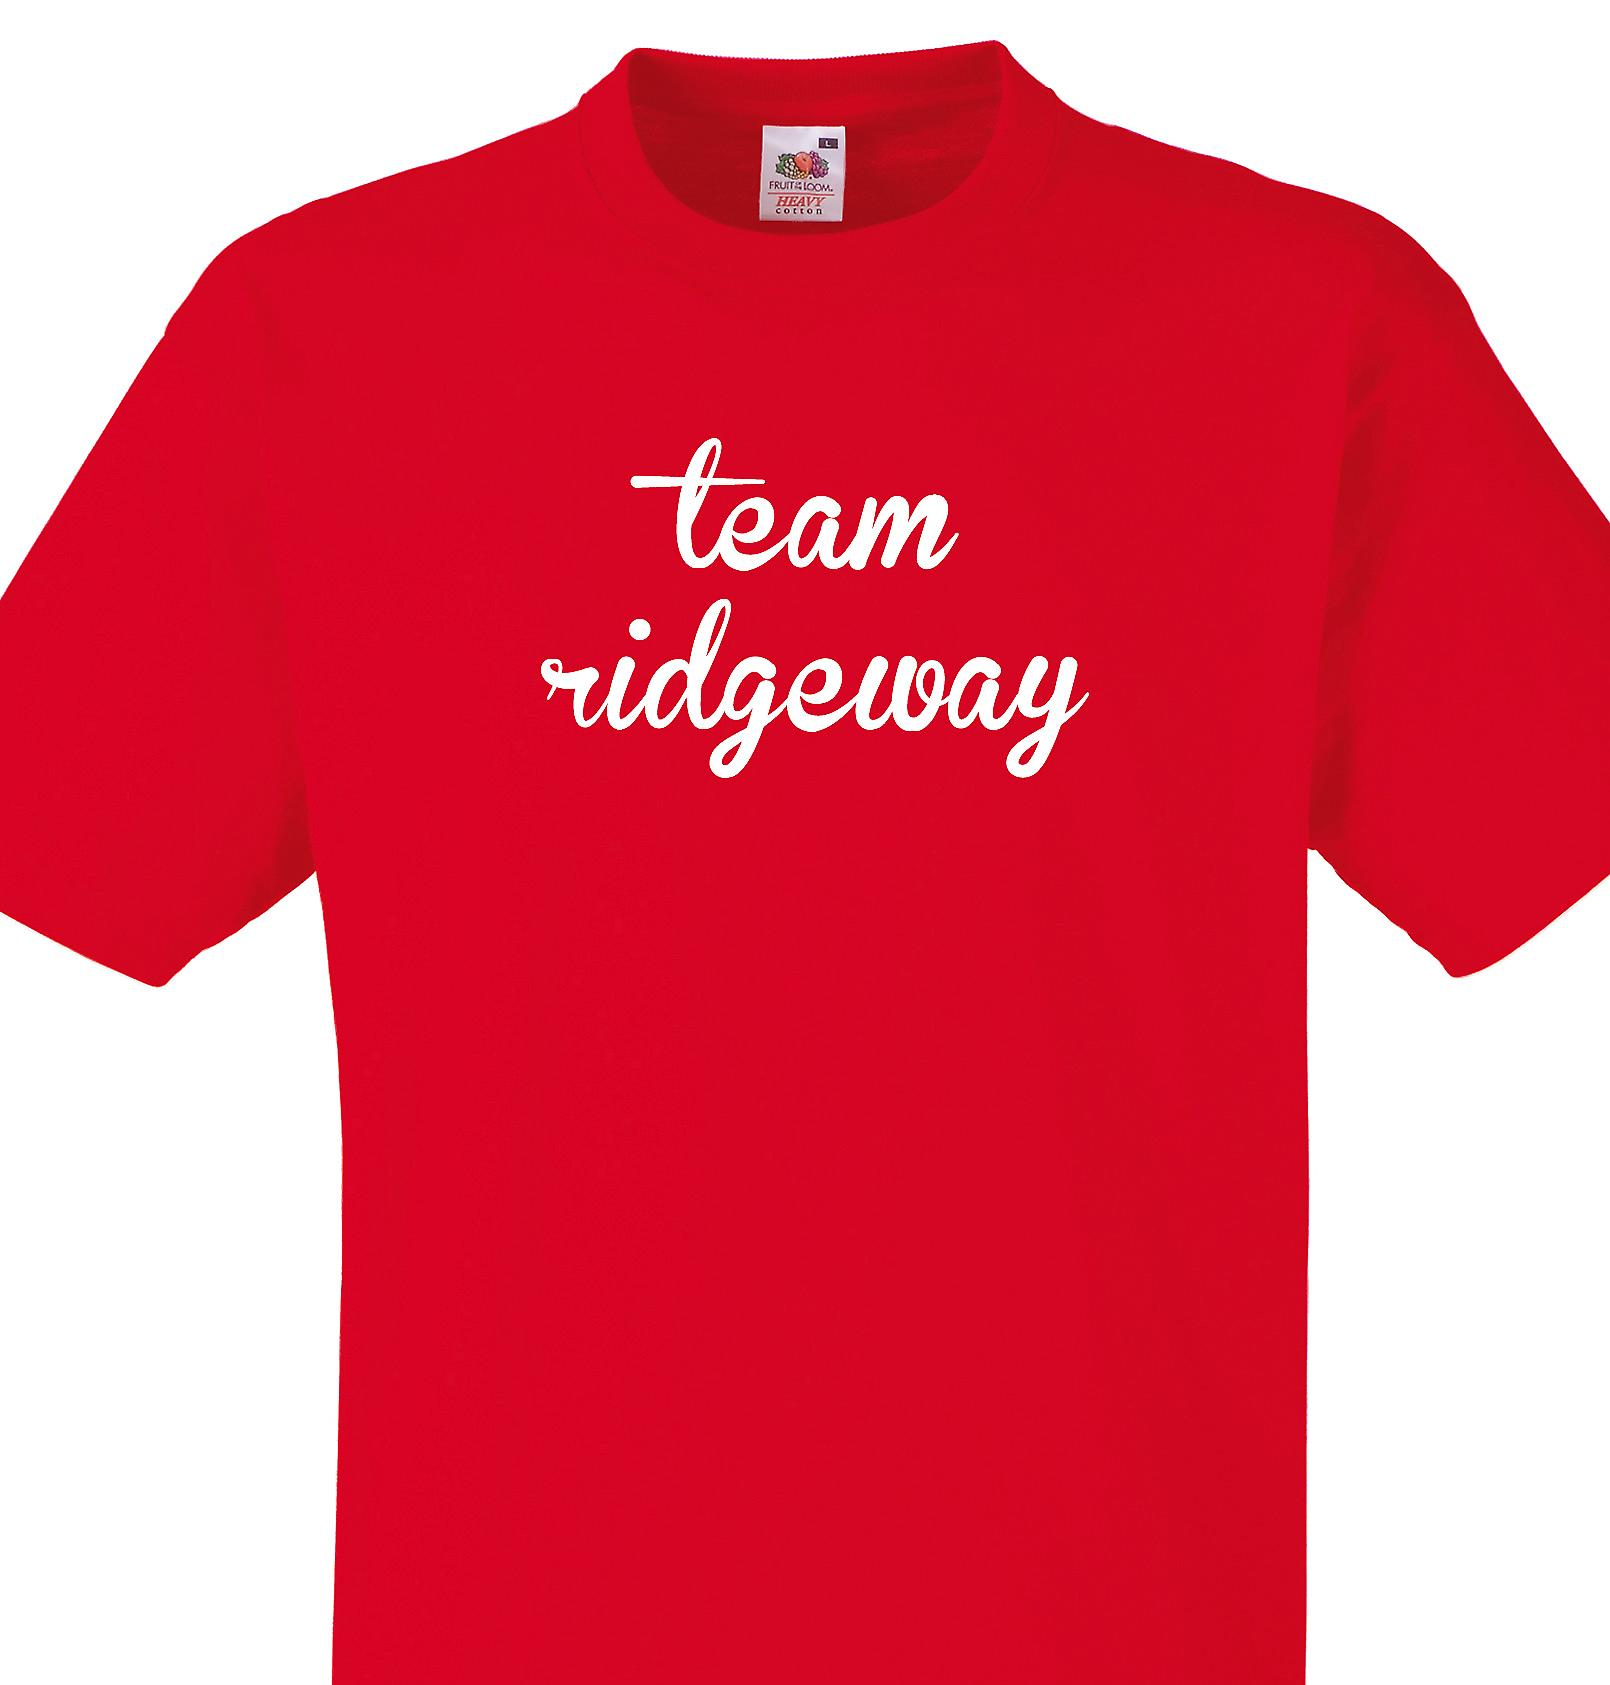 Team Ridgeway Red T shirt